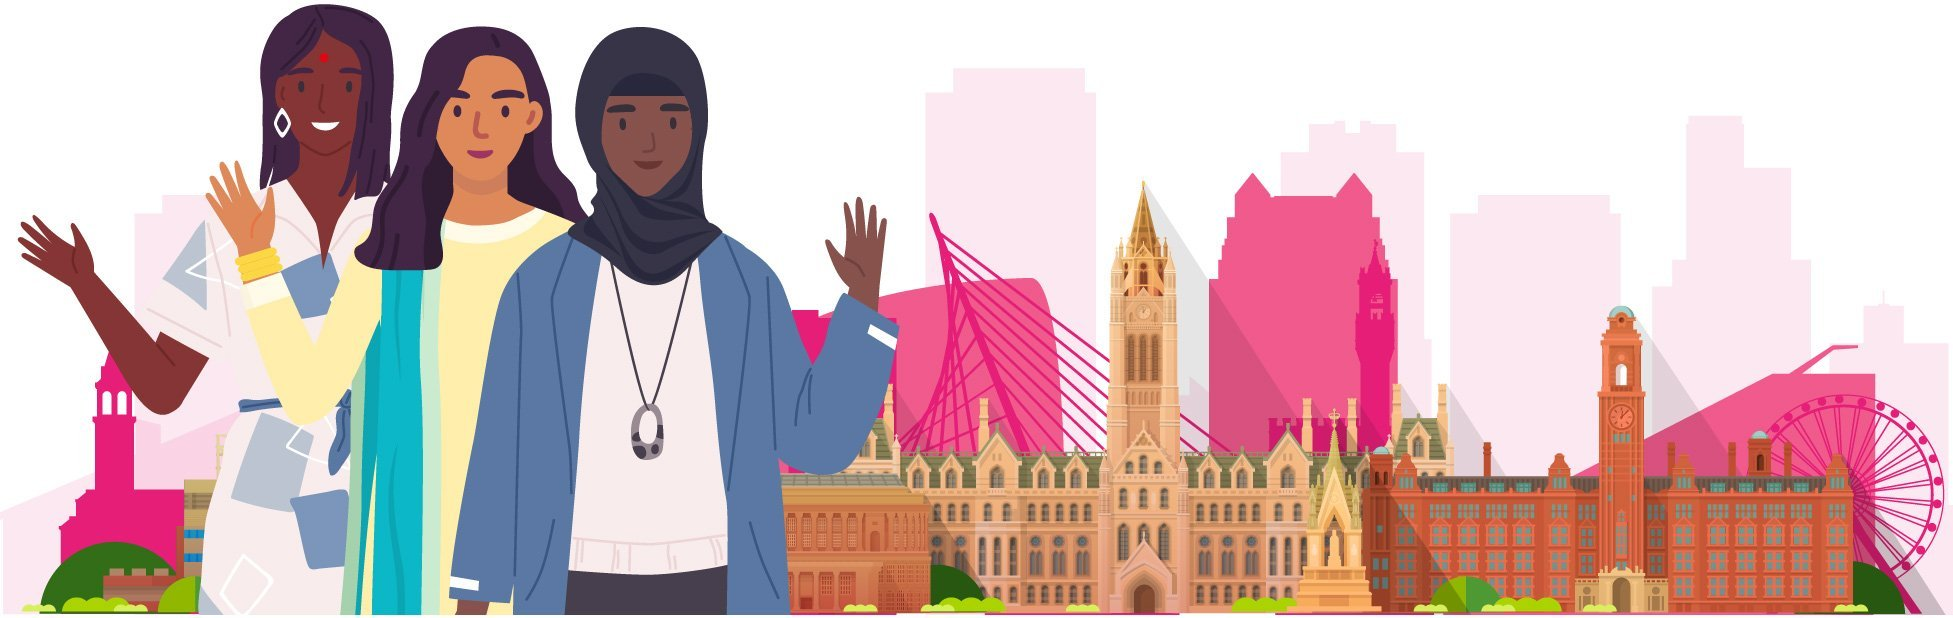 Illustration of women coming together in front of Manchester scene